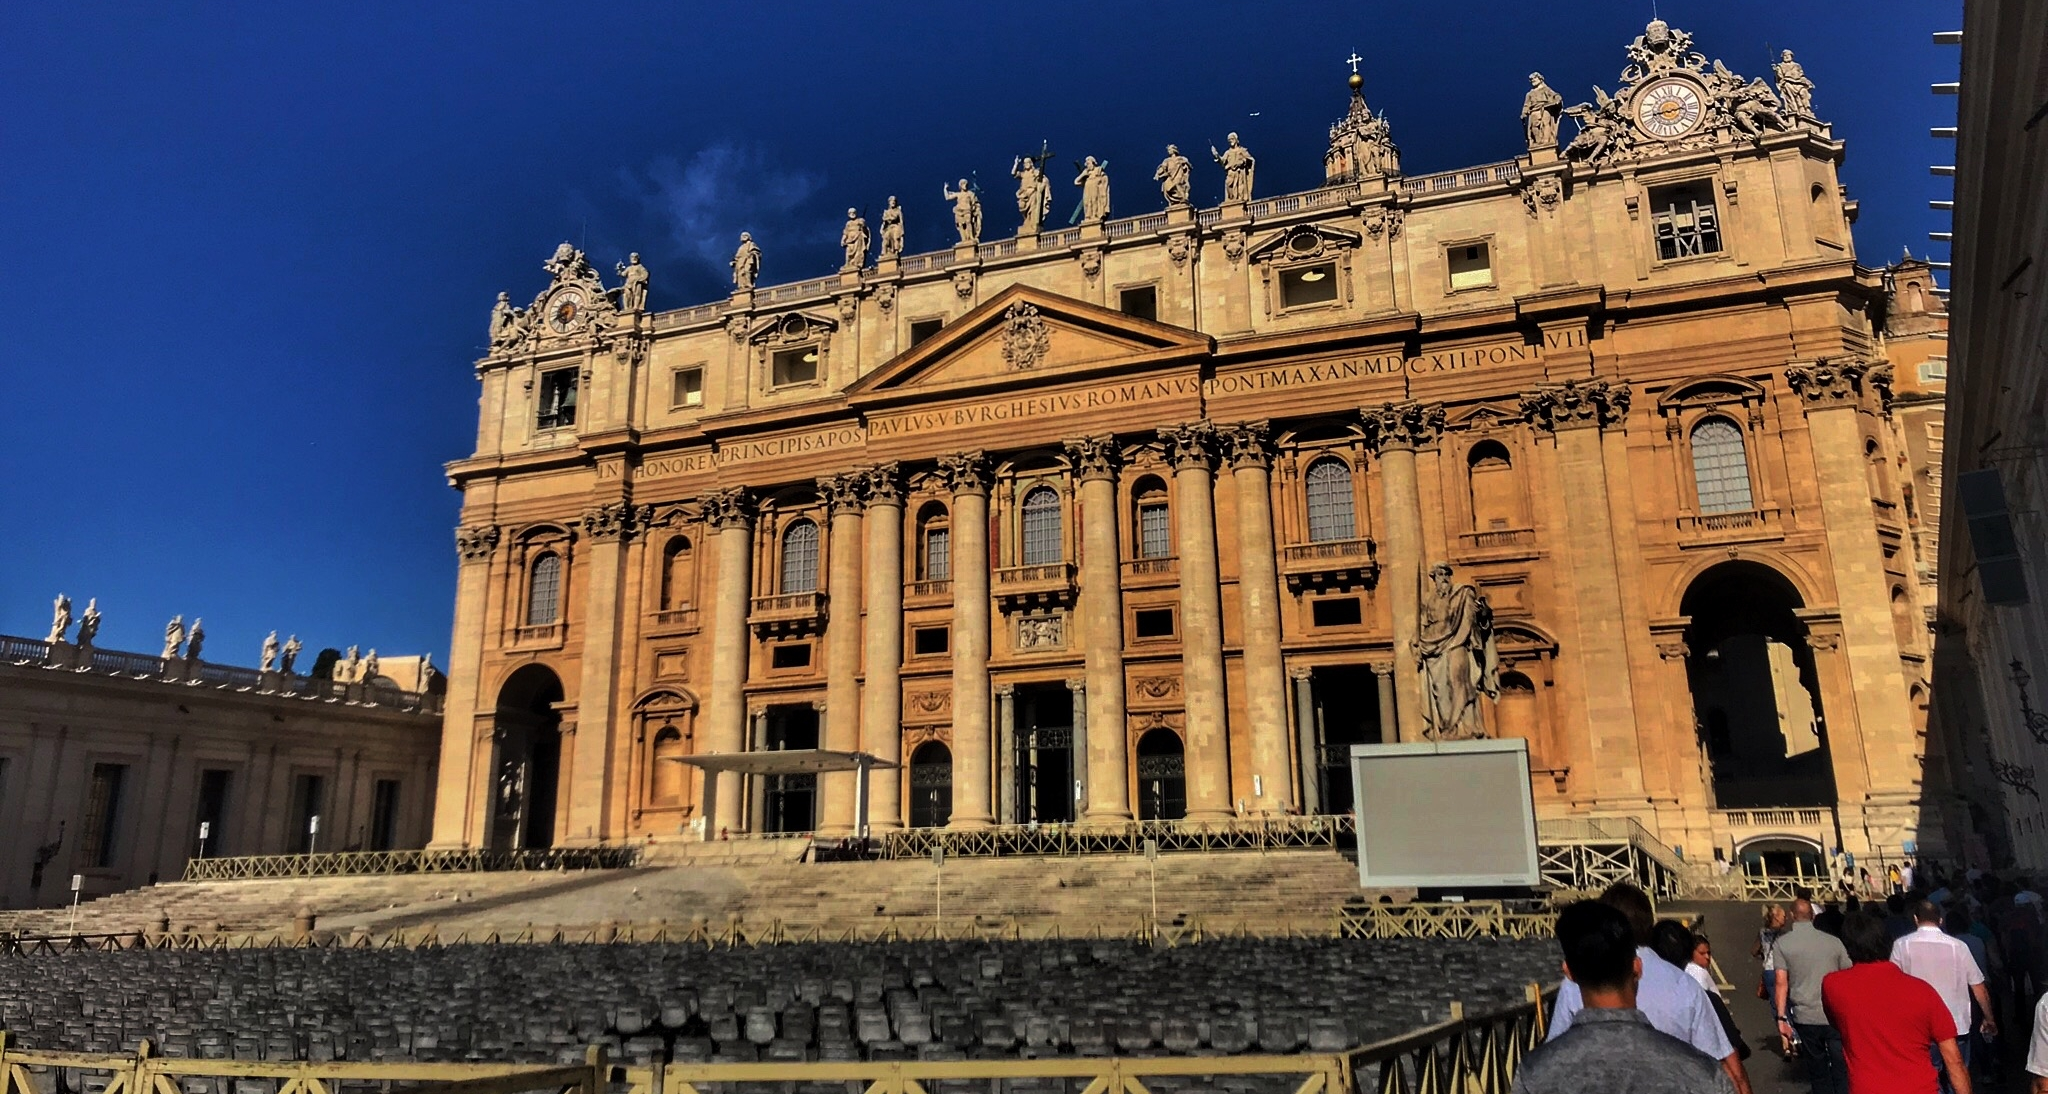 Front view of the St. Peter's Basilica.